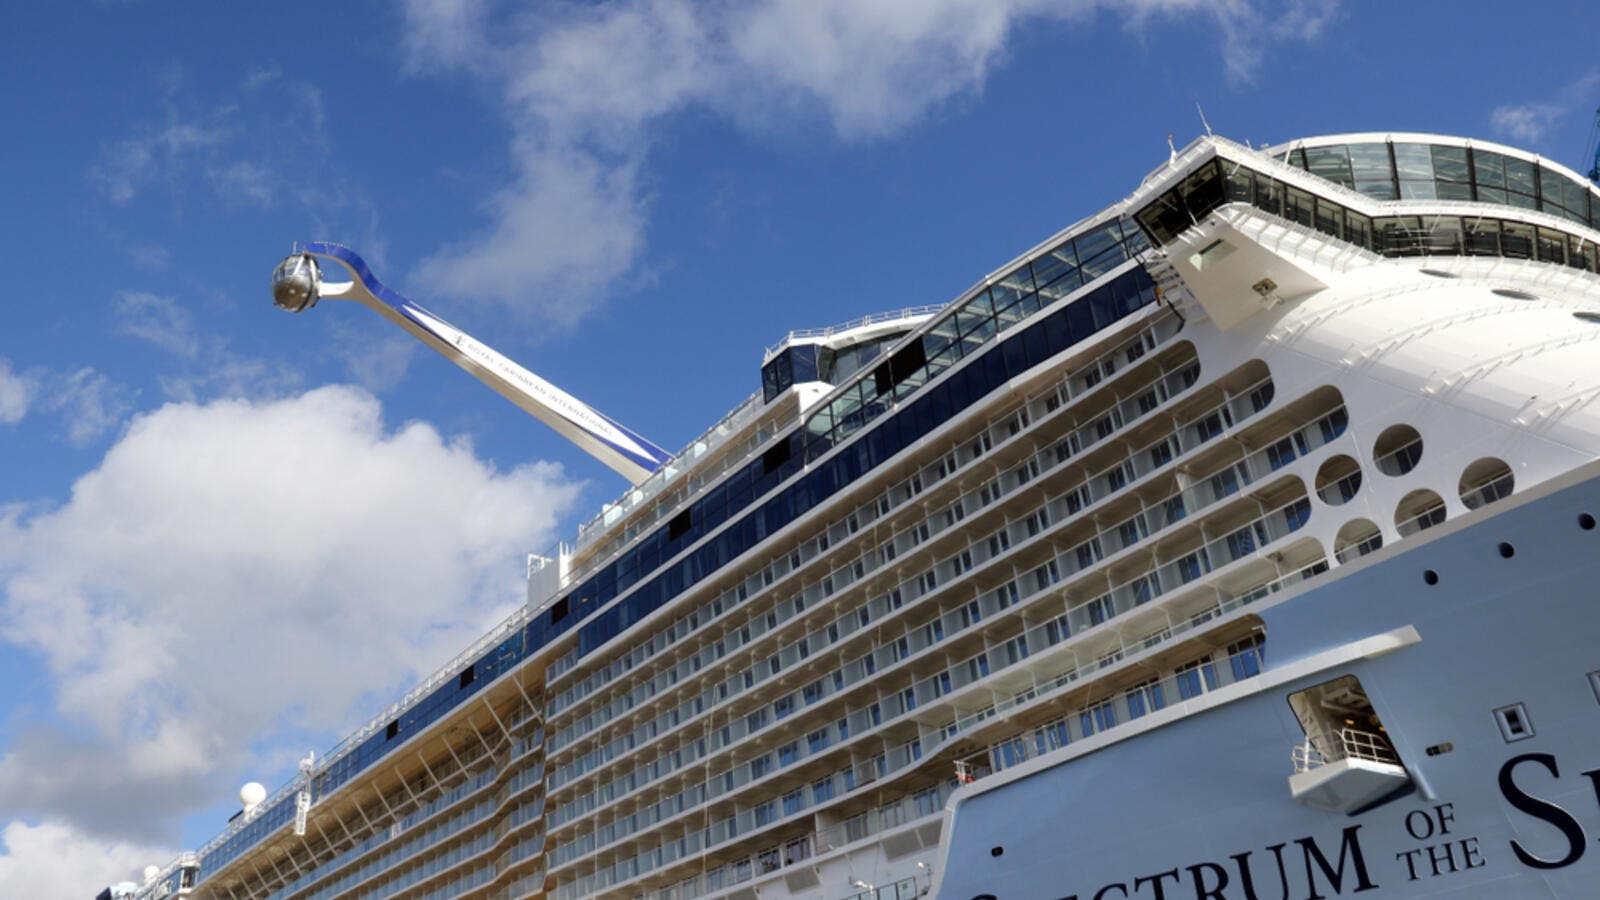 The Spectrum of the Seas crossed the canal from north to south during its maiden voyage.